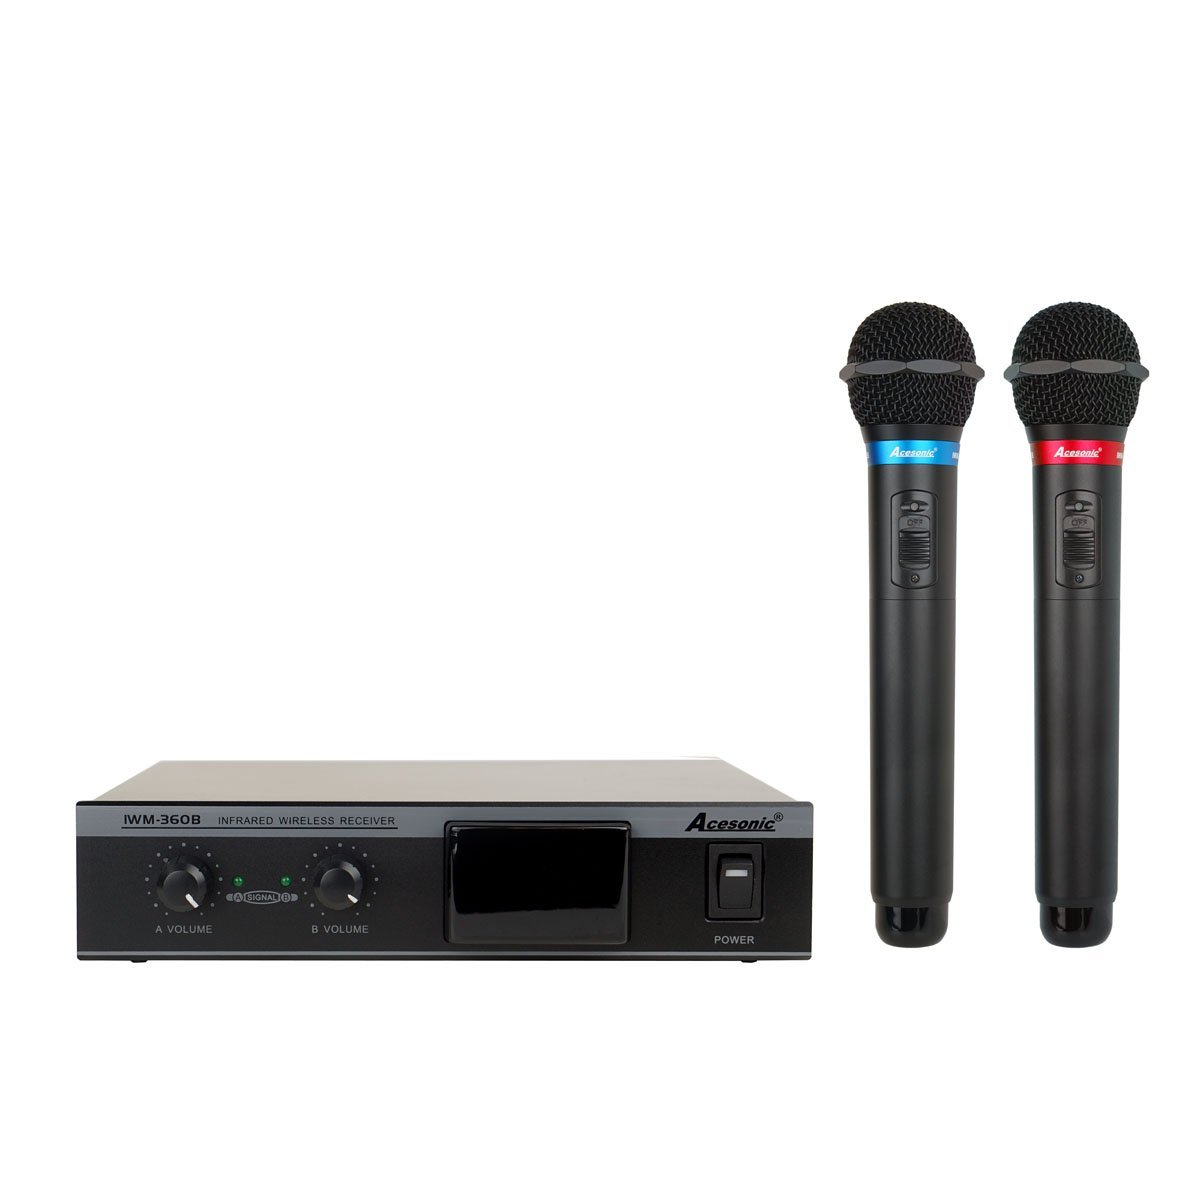 Acesonic Dual Wireless Rechargeable Karaoke Microphone System by Acesonic